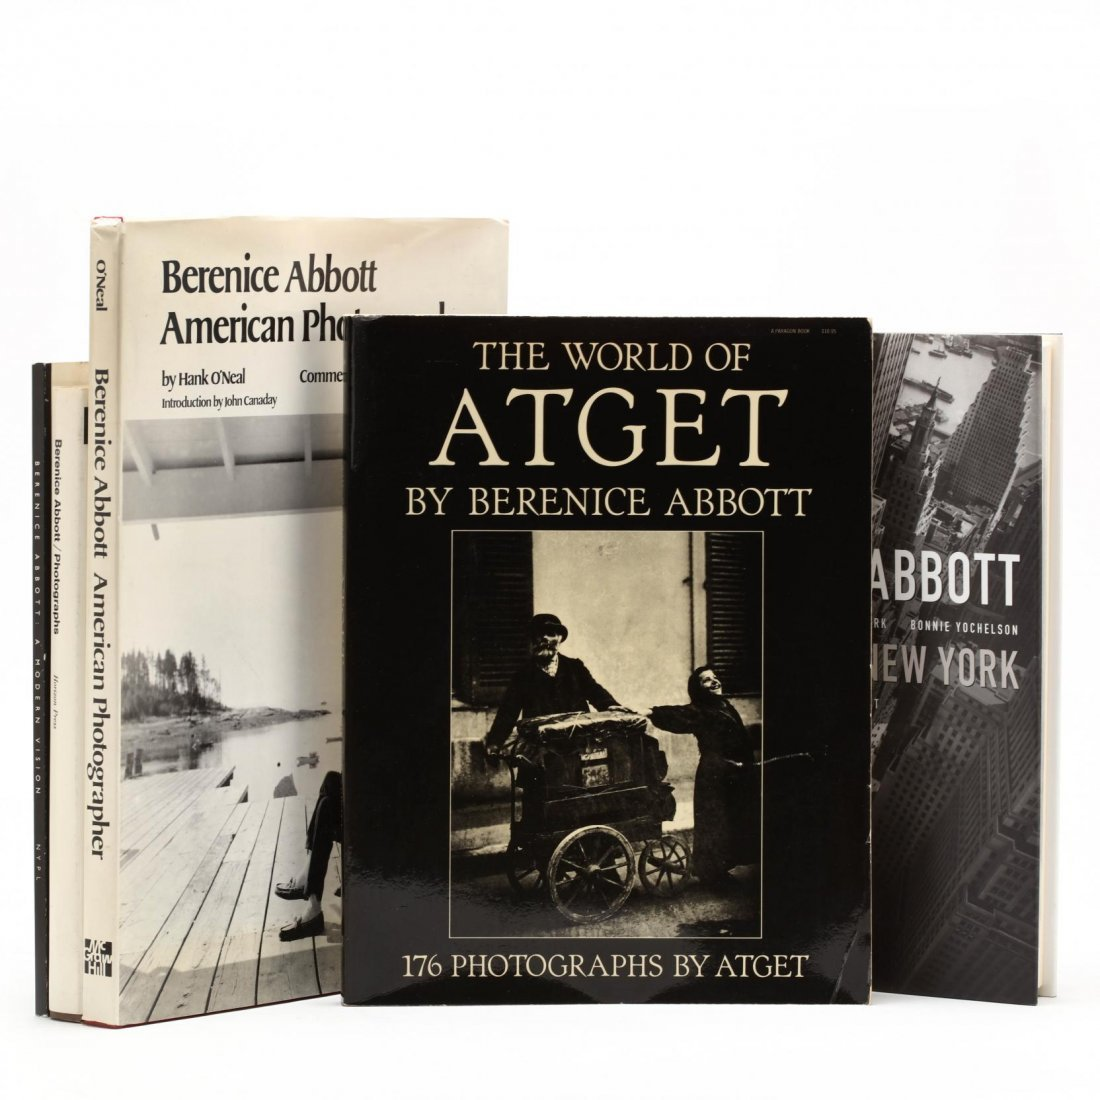 Seven Titles on Berenice Abbott - 3